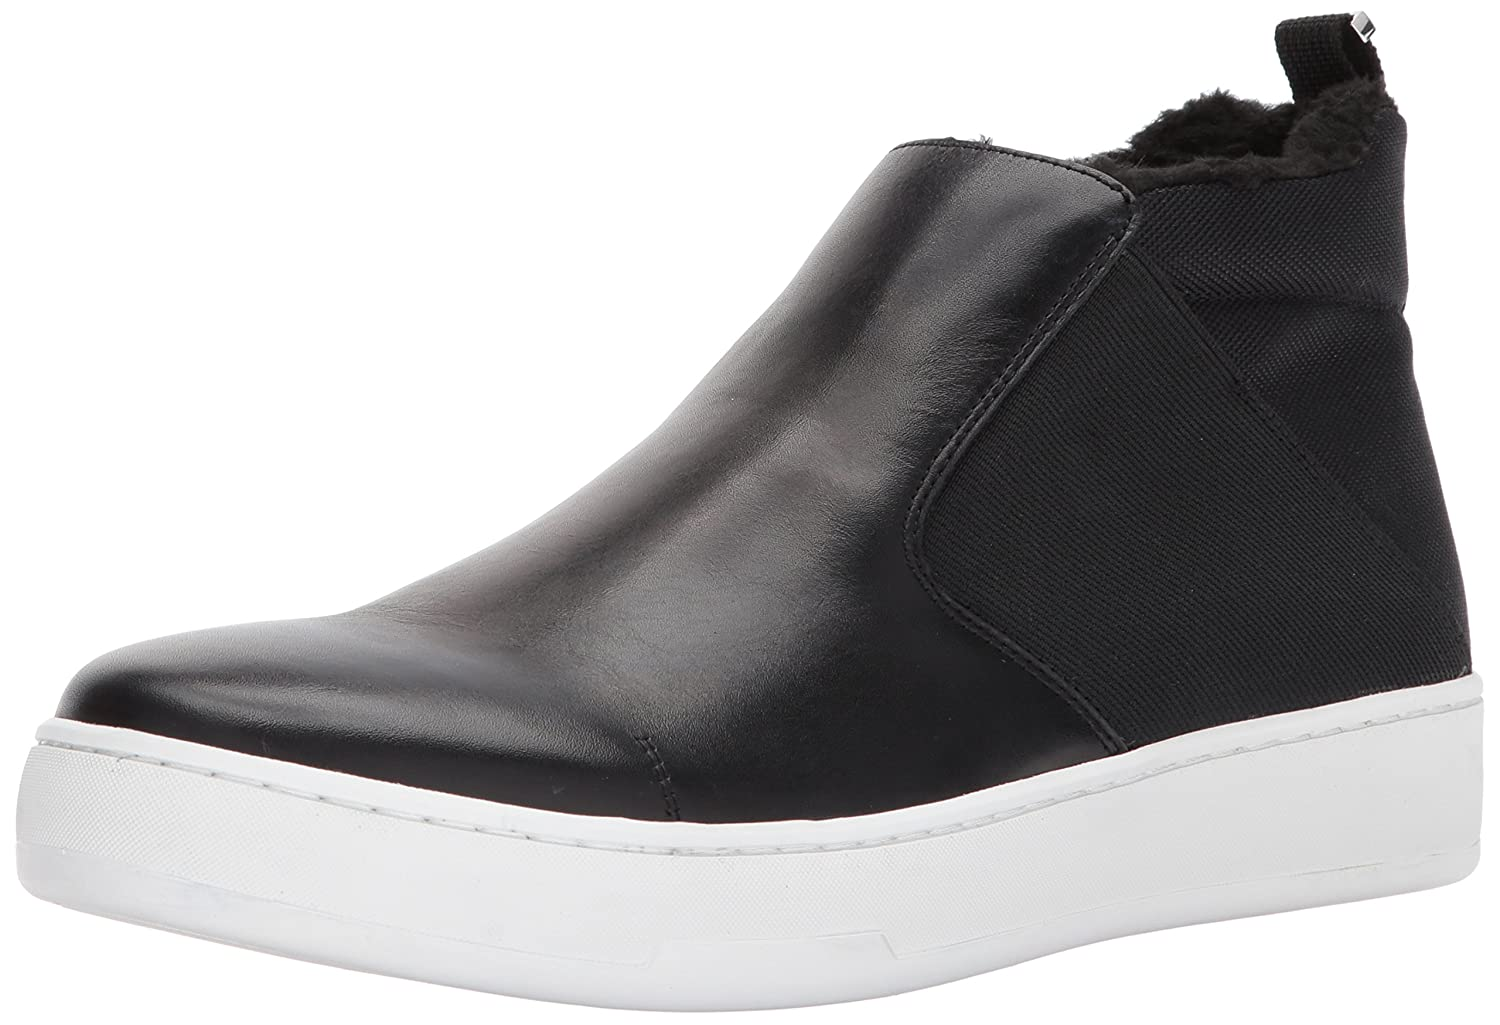 3bdb5c710c188 Calvin Klein Men s Noble Dress Calf Calf Calf Fashion Sneaker B071QXY84Y  Fashion Sneakers c4fcb0